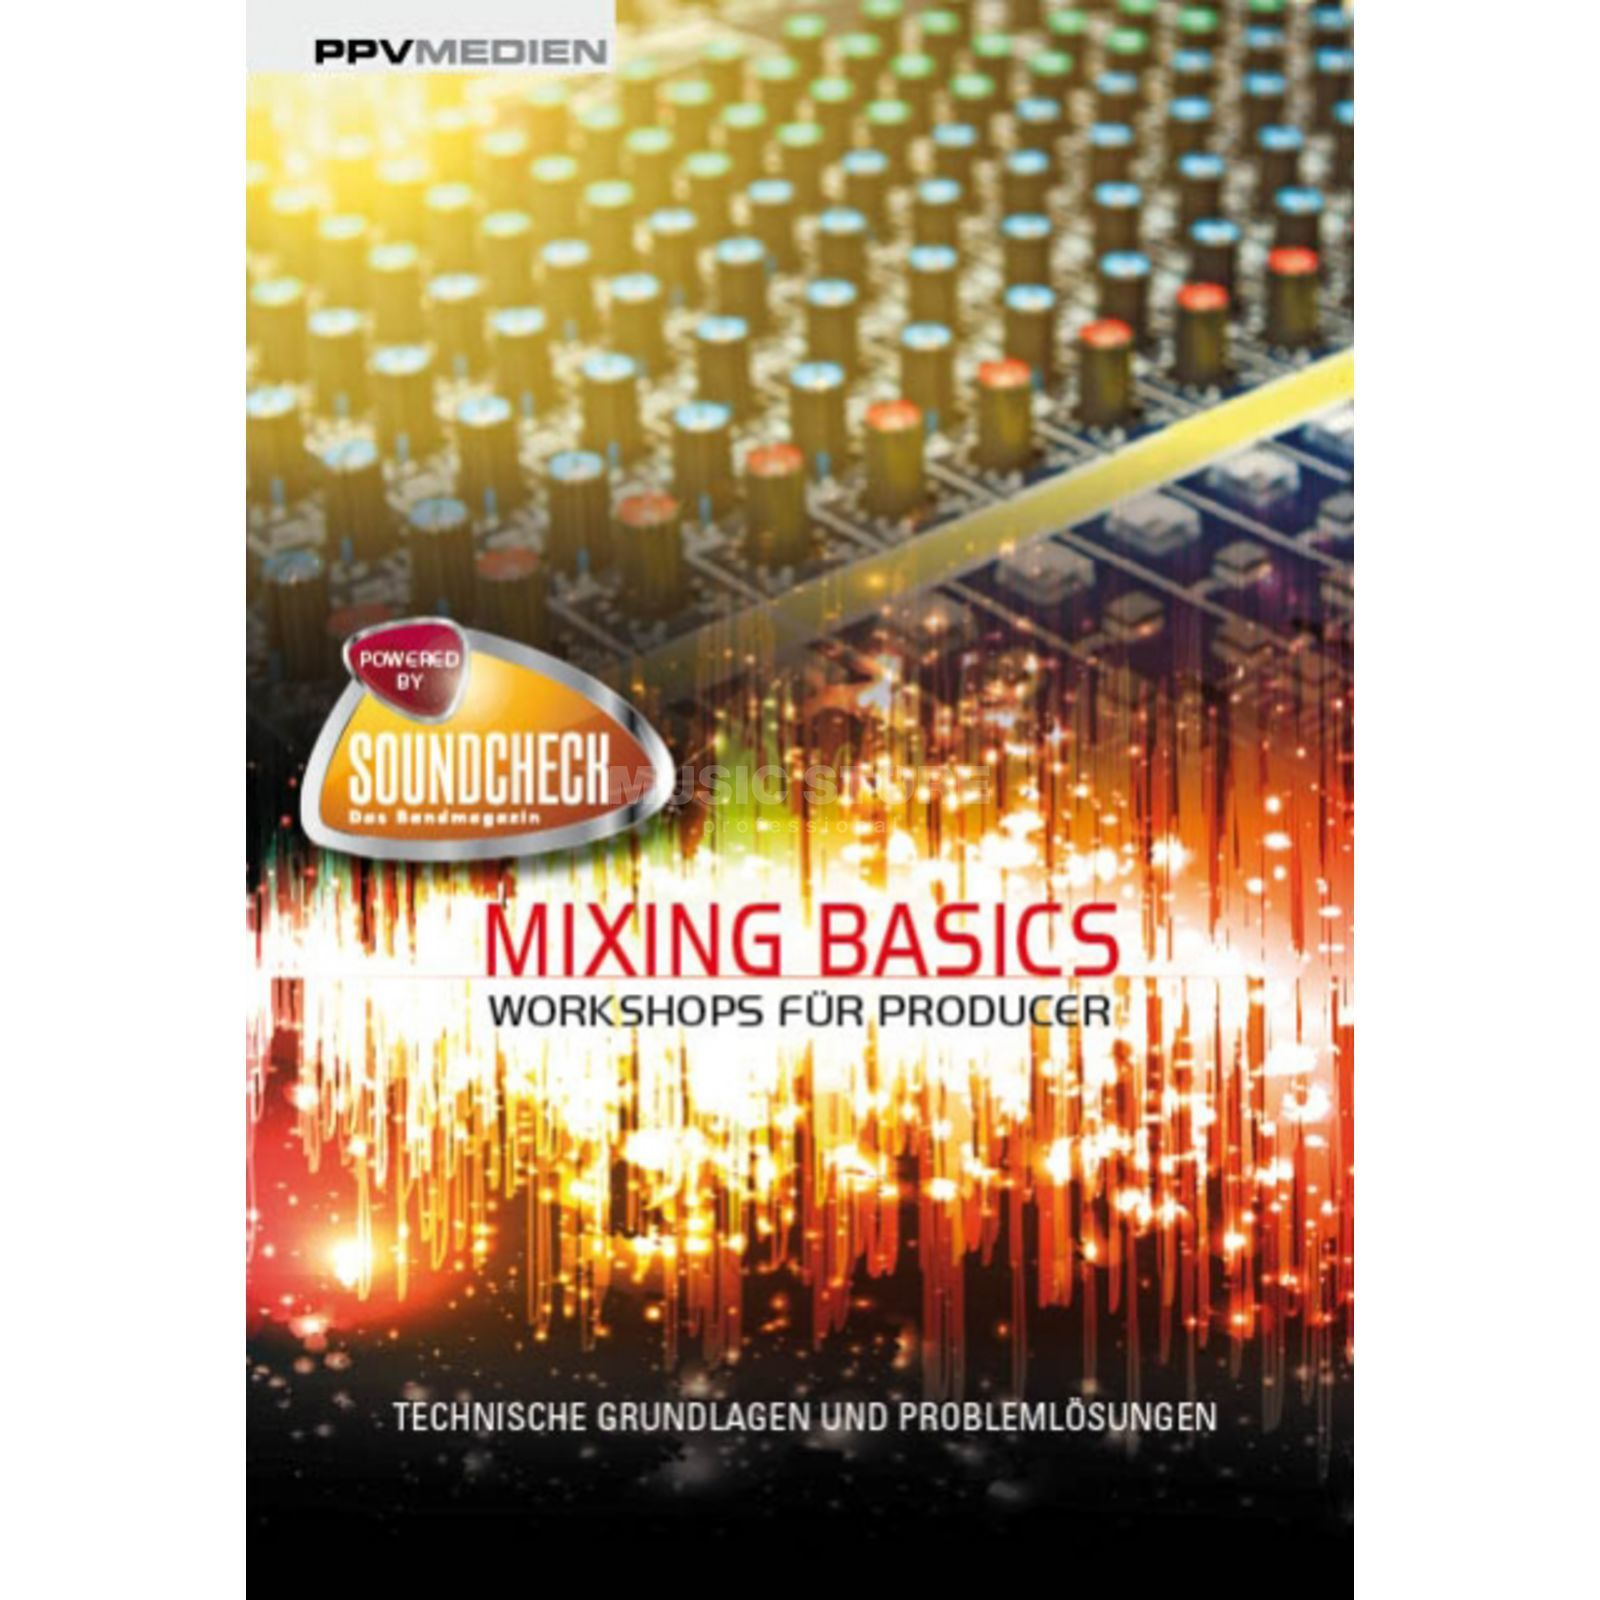 PPV Medien Mixing Basics Workshops für Producer Produktbillede